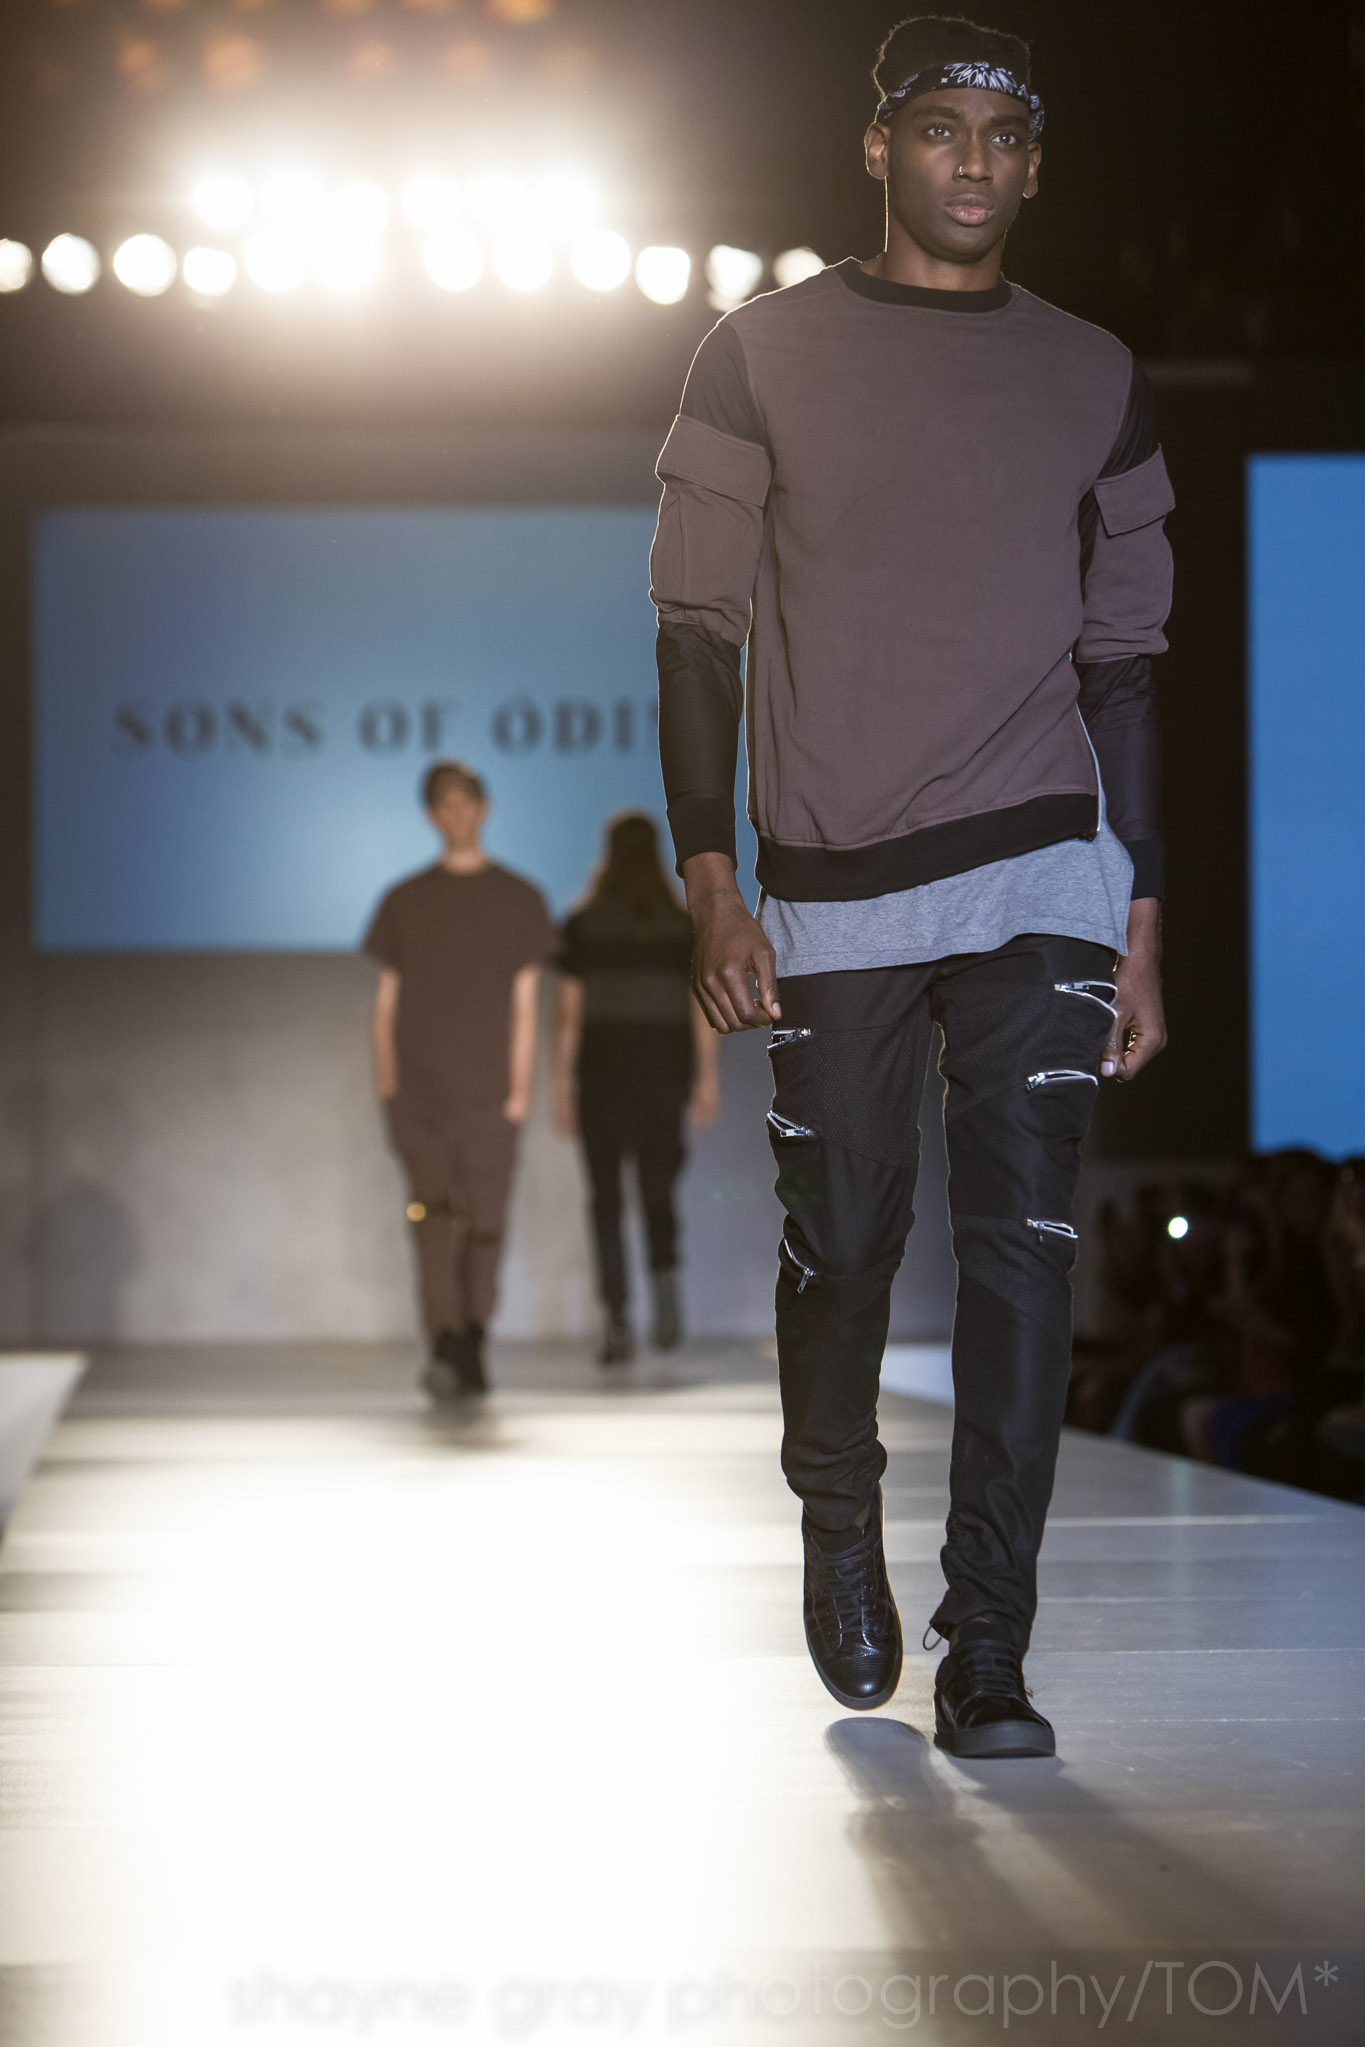 Shayne-Gray-Toronto-men's-fashion_week-TOM-sons-of-odin-8513.jpg